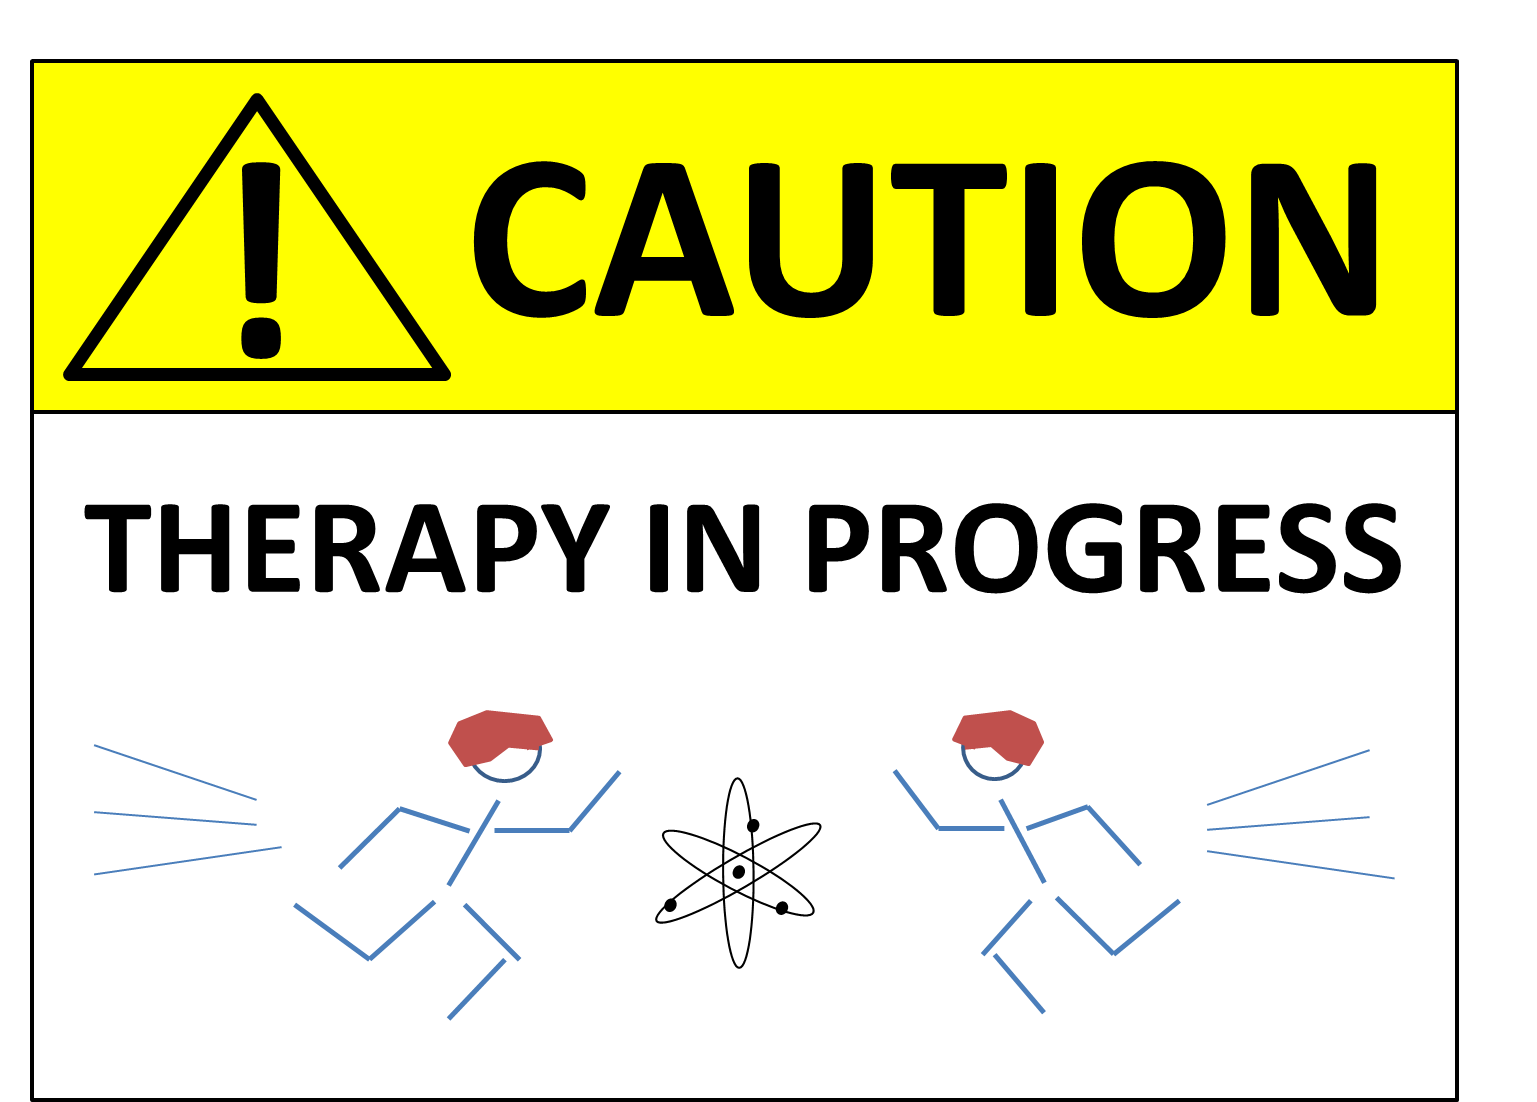 Caution Therapy in Progress Image